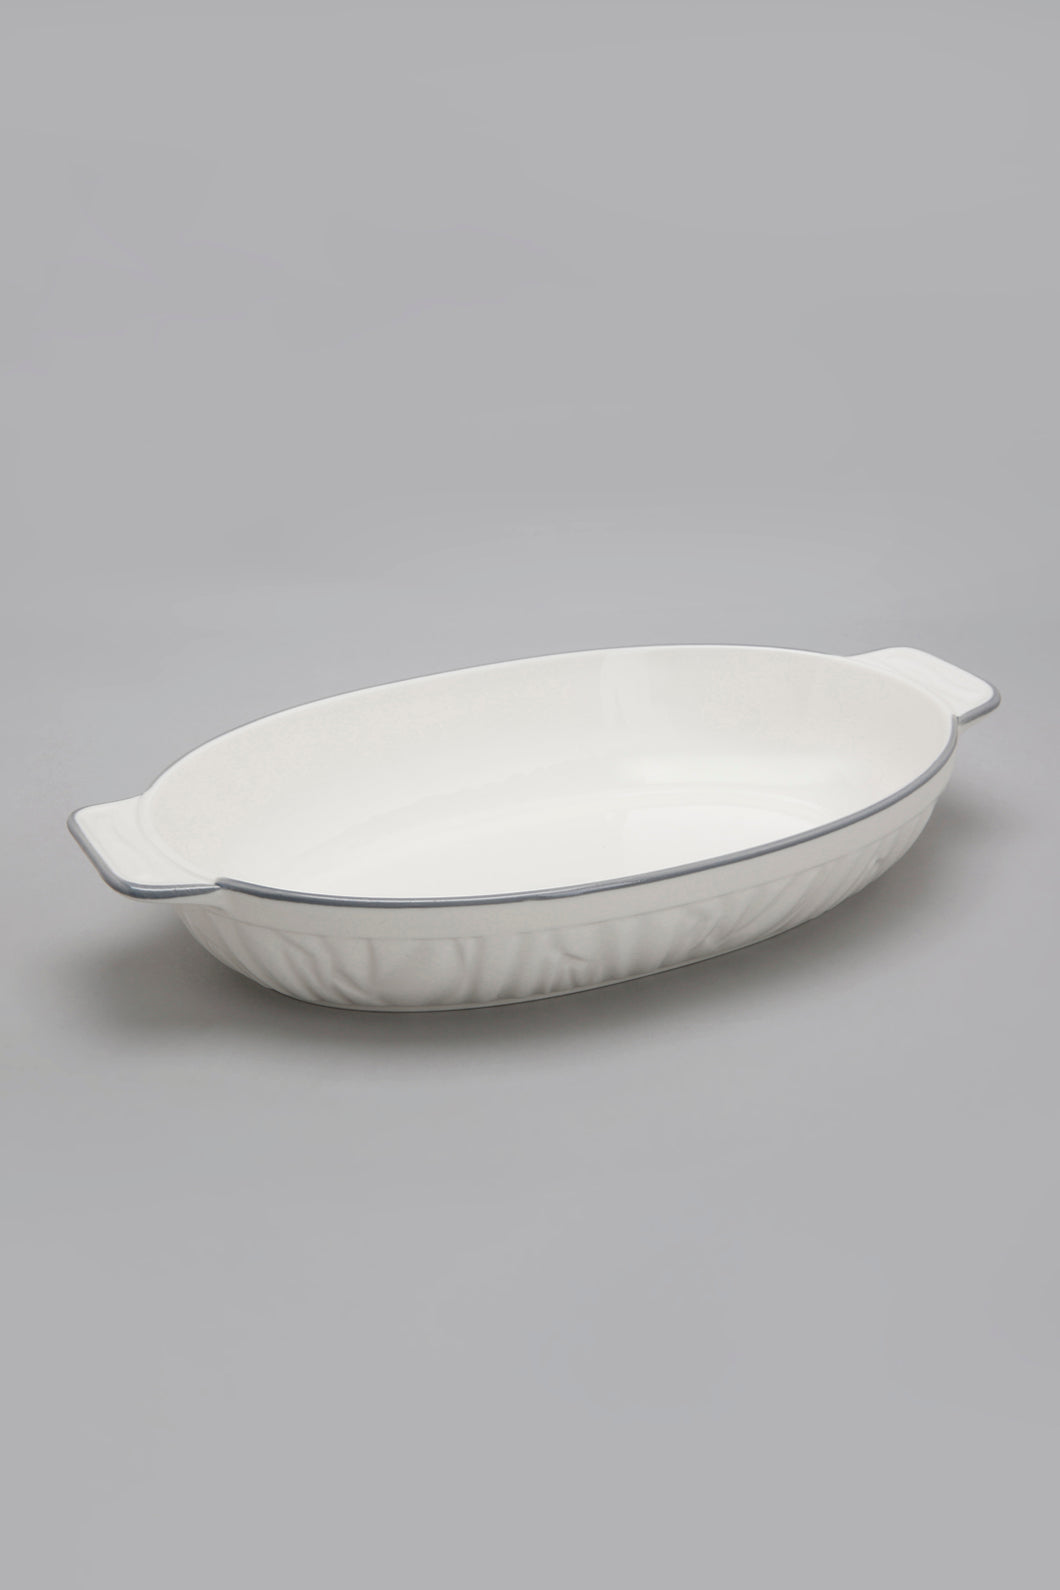 White Porcelain Embossed Oval Dish with Grey Border